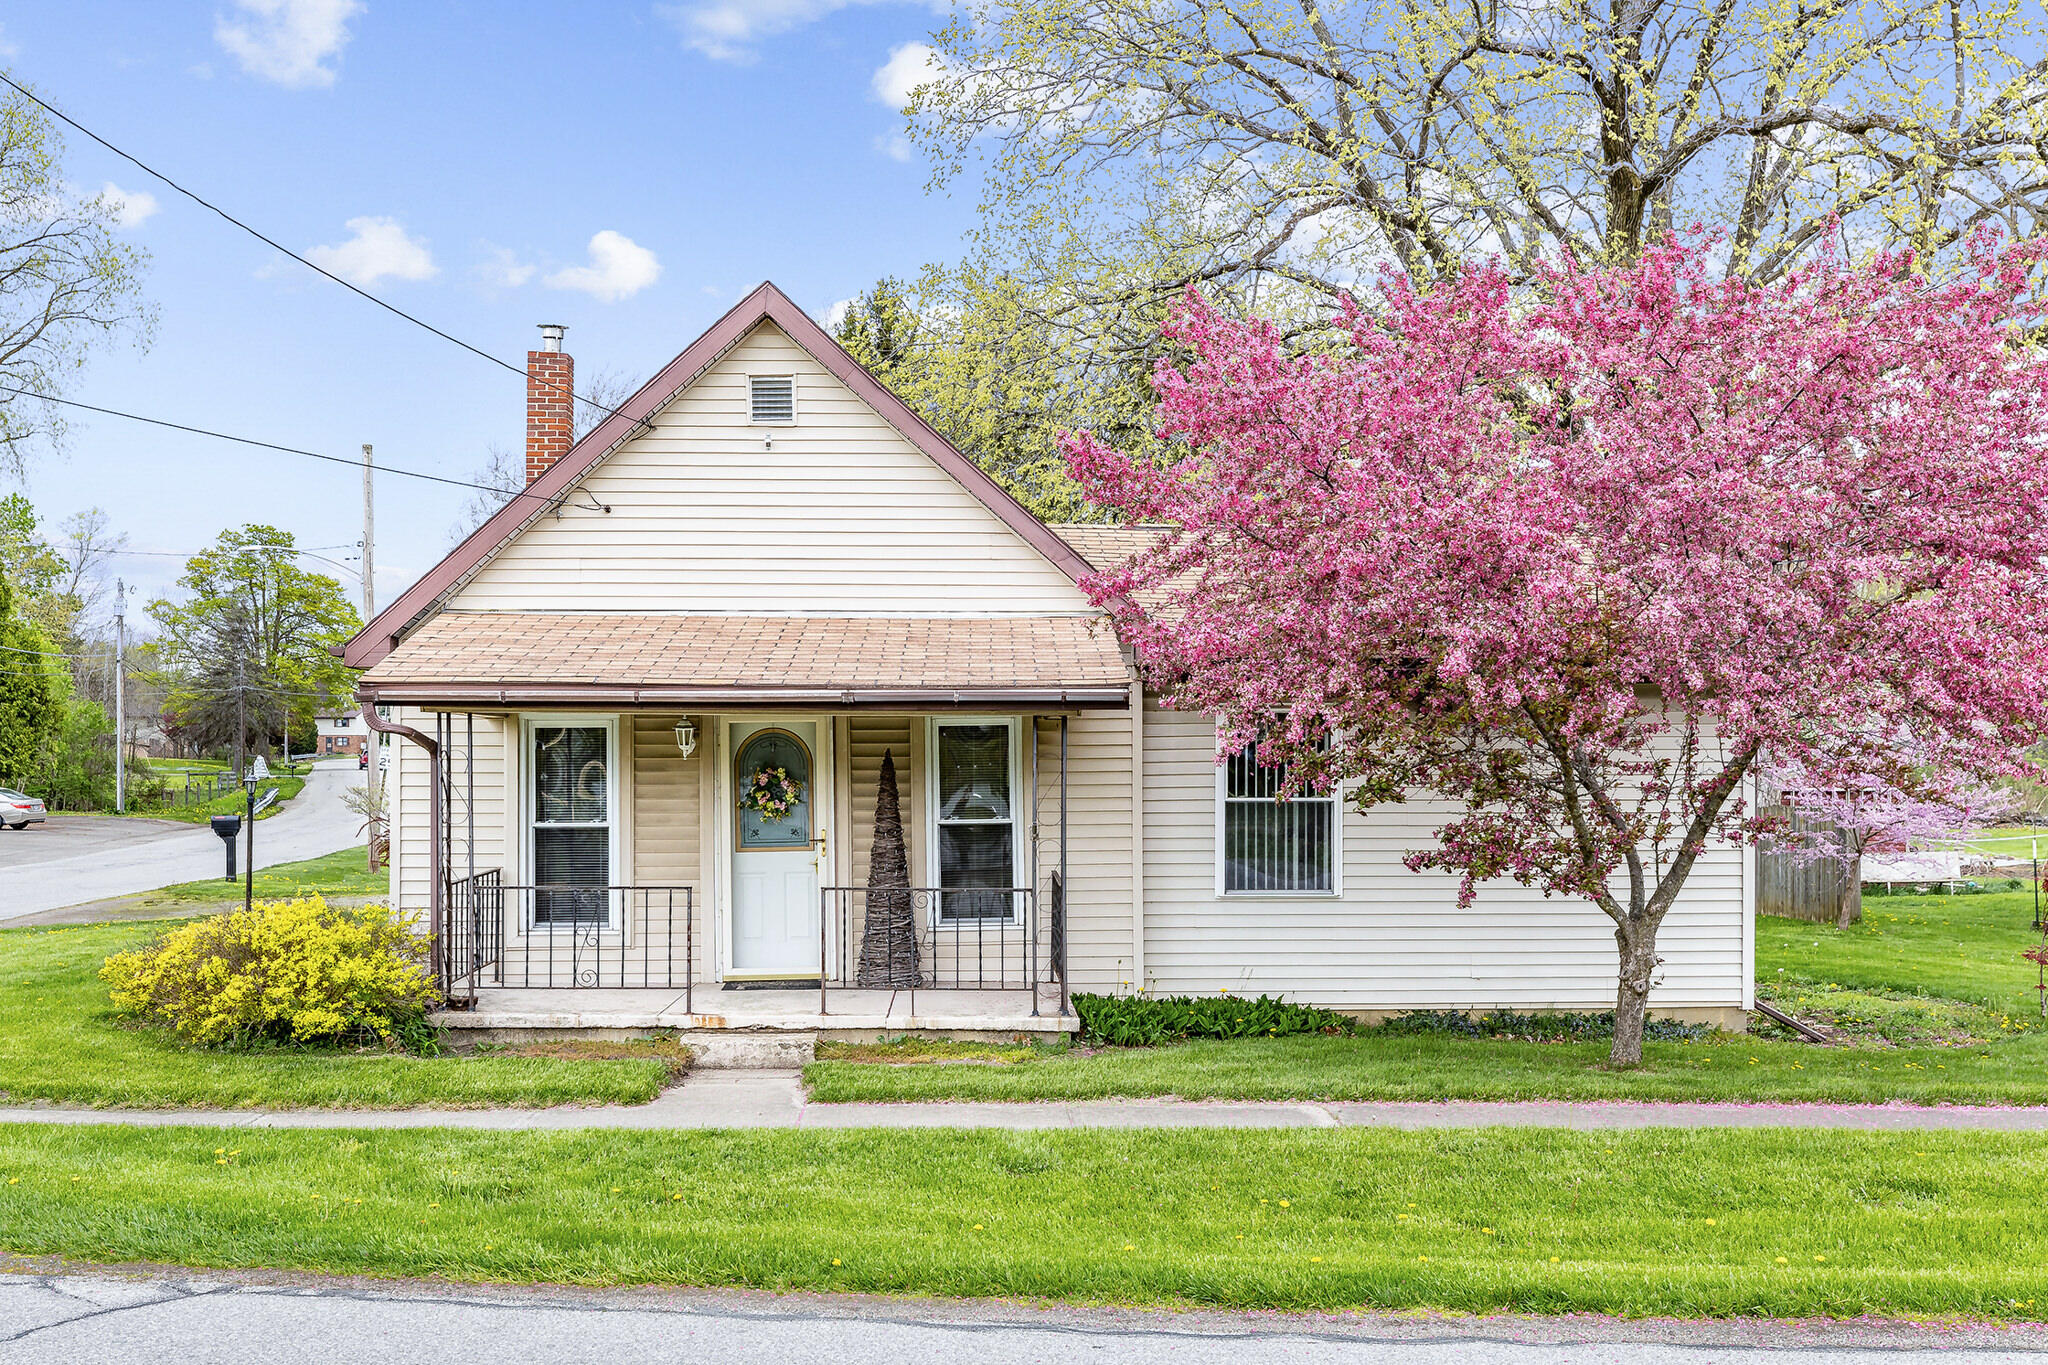 254 W Maple Street Property Photo - North Lewisburg, OH real estate listing